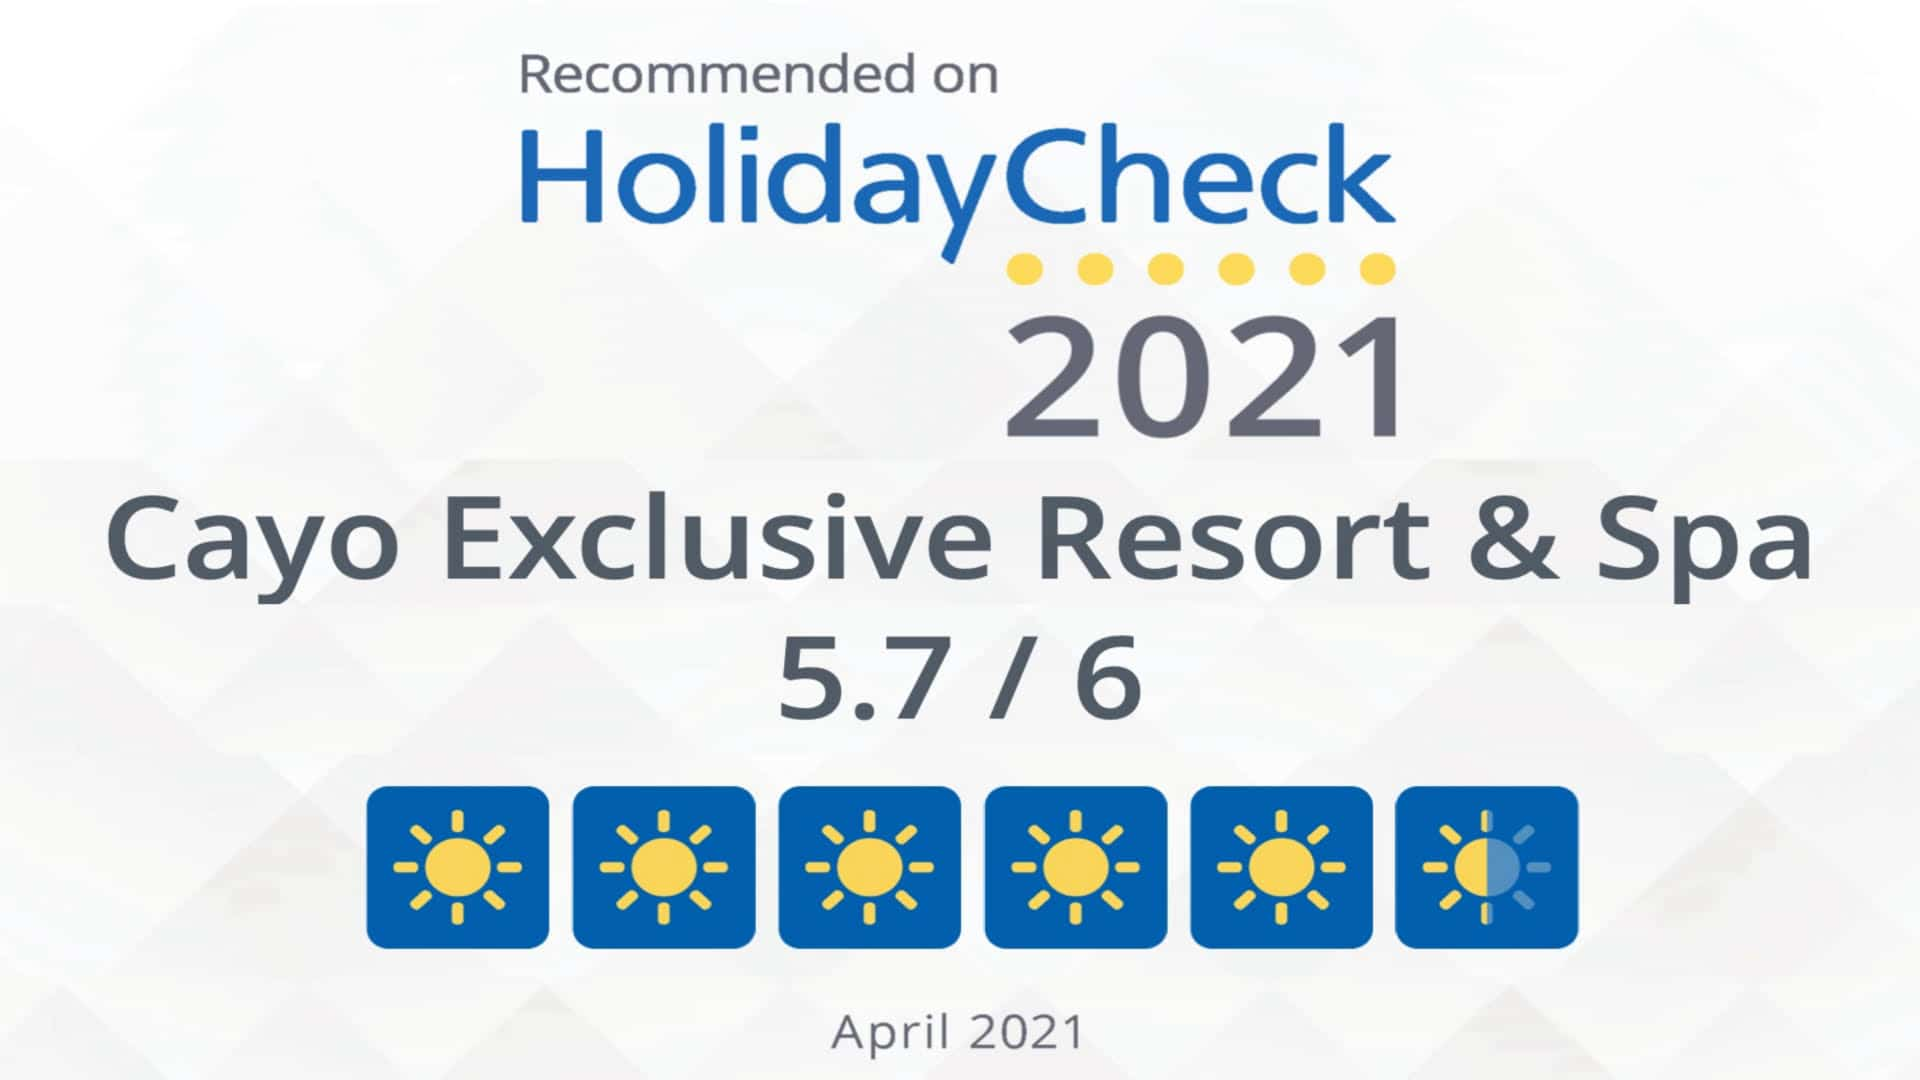 Recommended on HolidayCheck 2021